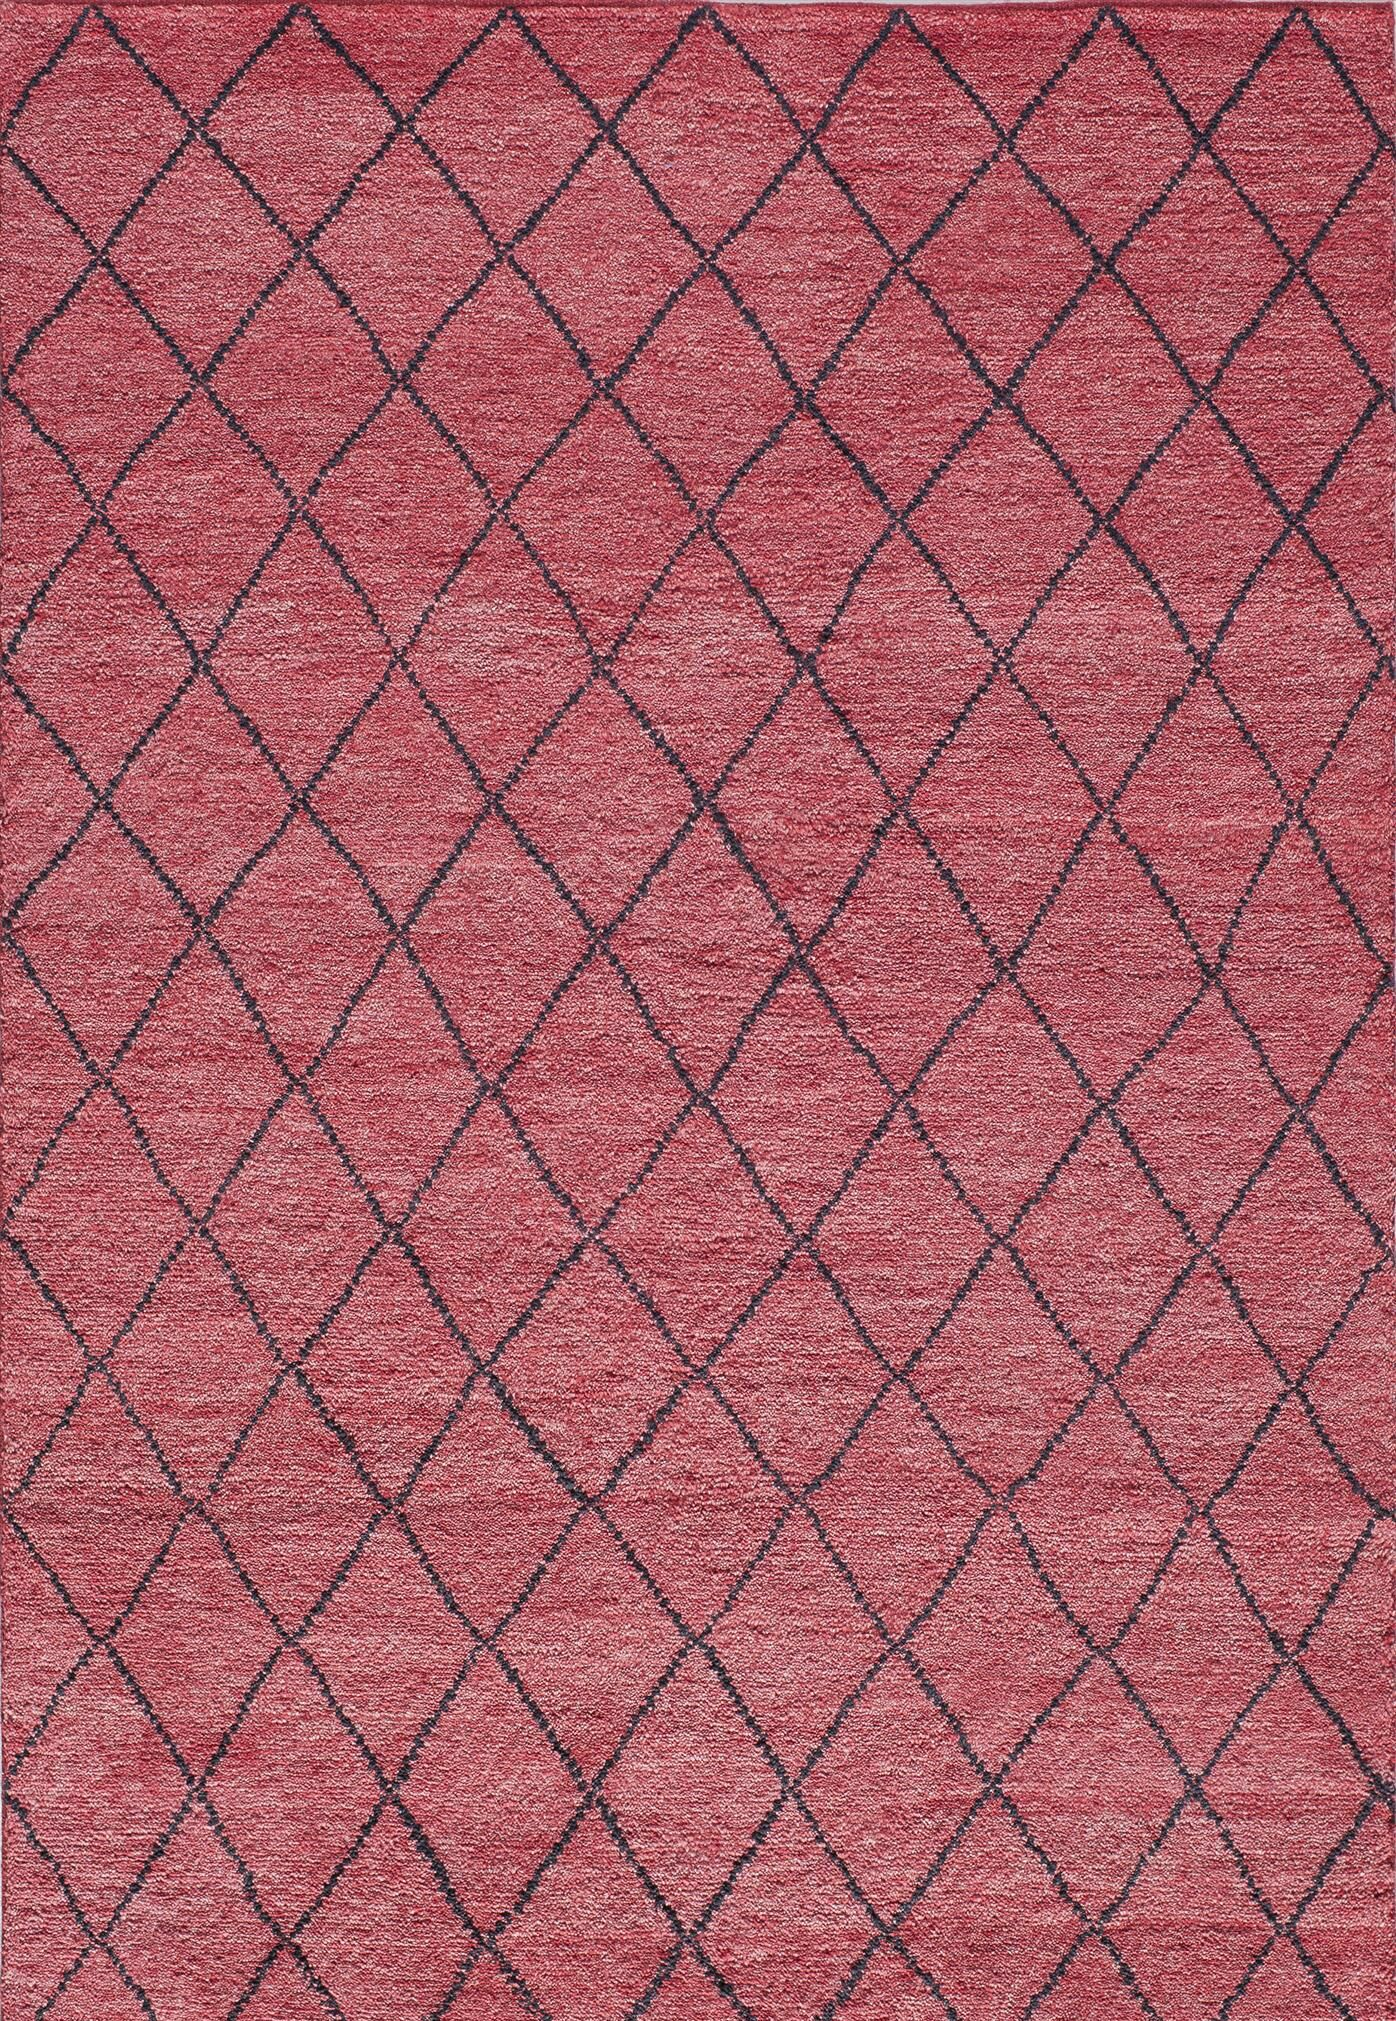 Brice Hand-Knotted Red Area Rug Rug Size: Rectangle 5' x 8'